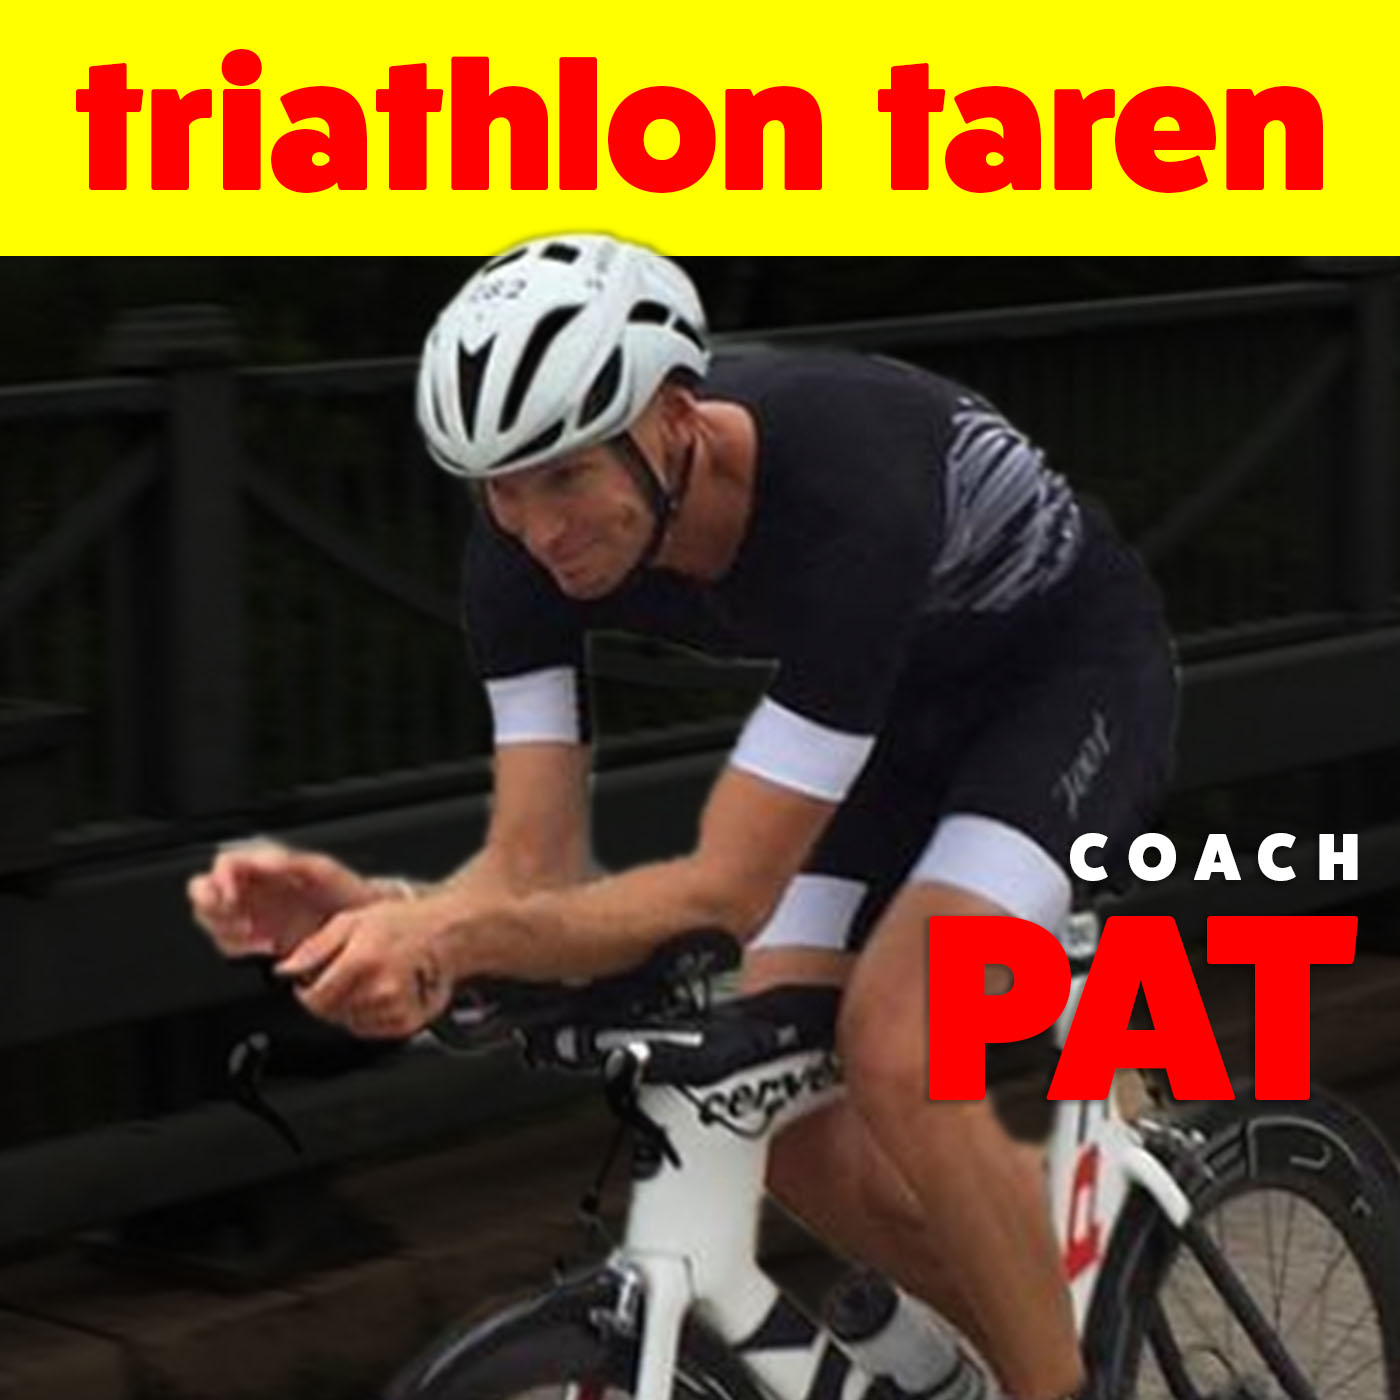 2017 Year in Review with Coach Pat Peacock: Austin & Campeche 70.3s, Marathon Swimming, and Training Plan Design